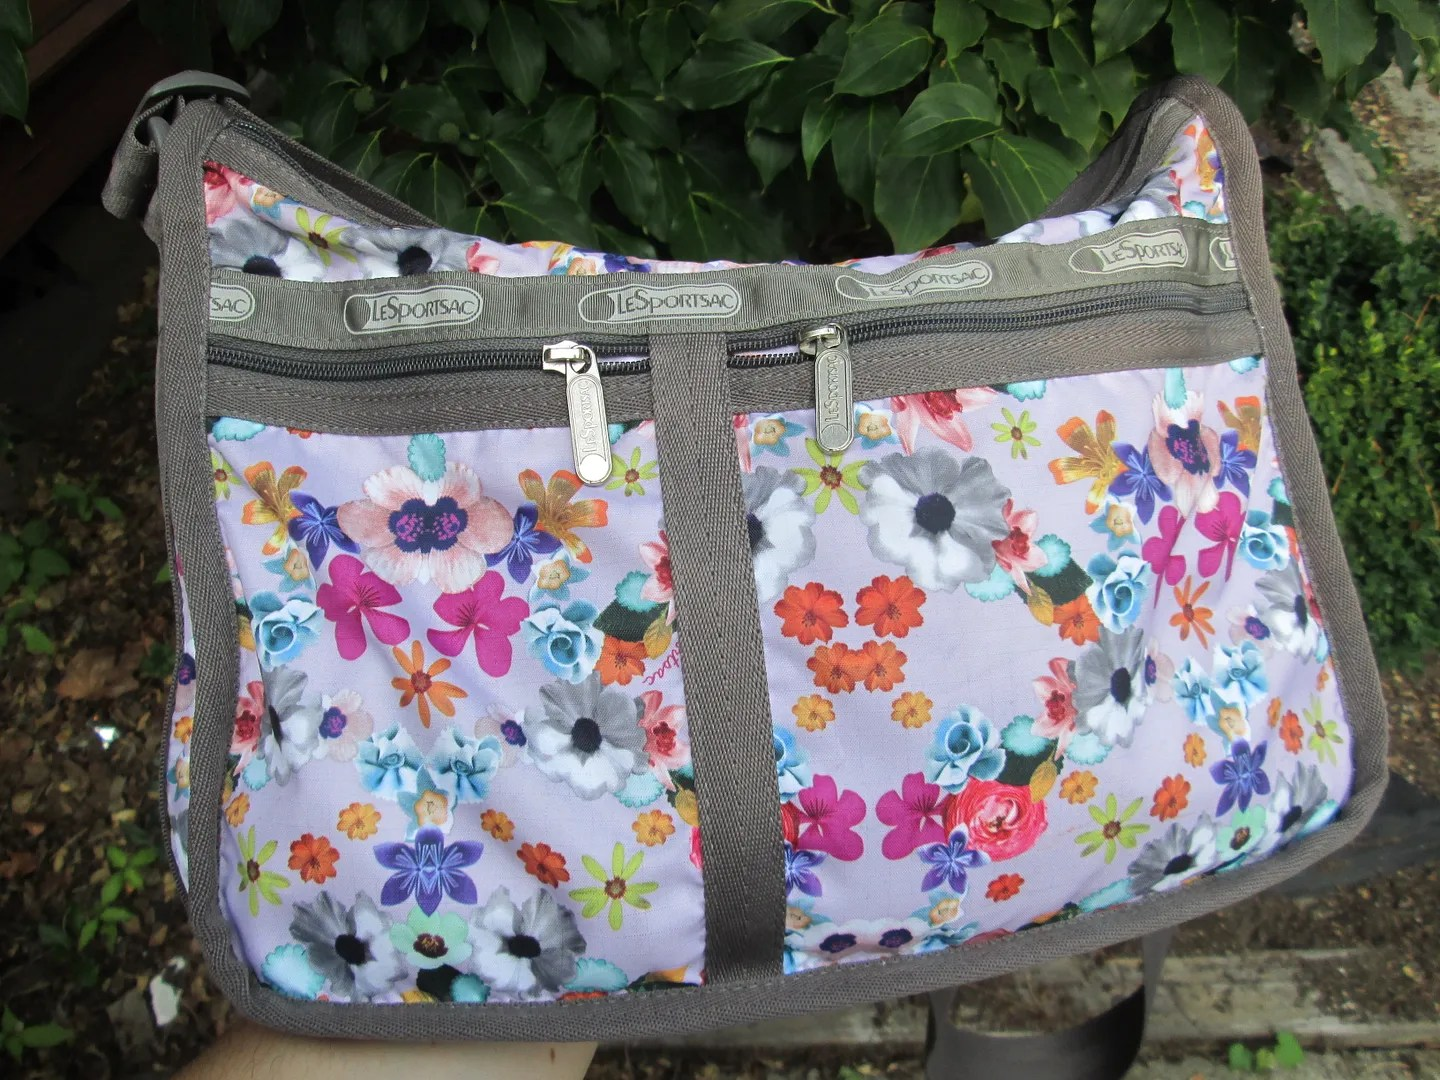 floral lesportsac purse everyday deluxe bag with gray trim